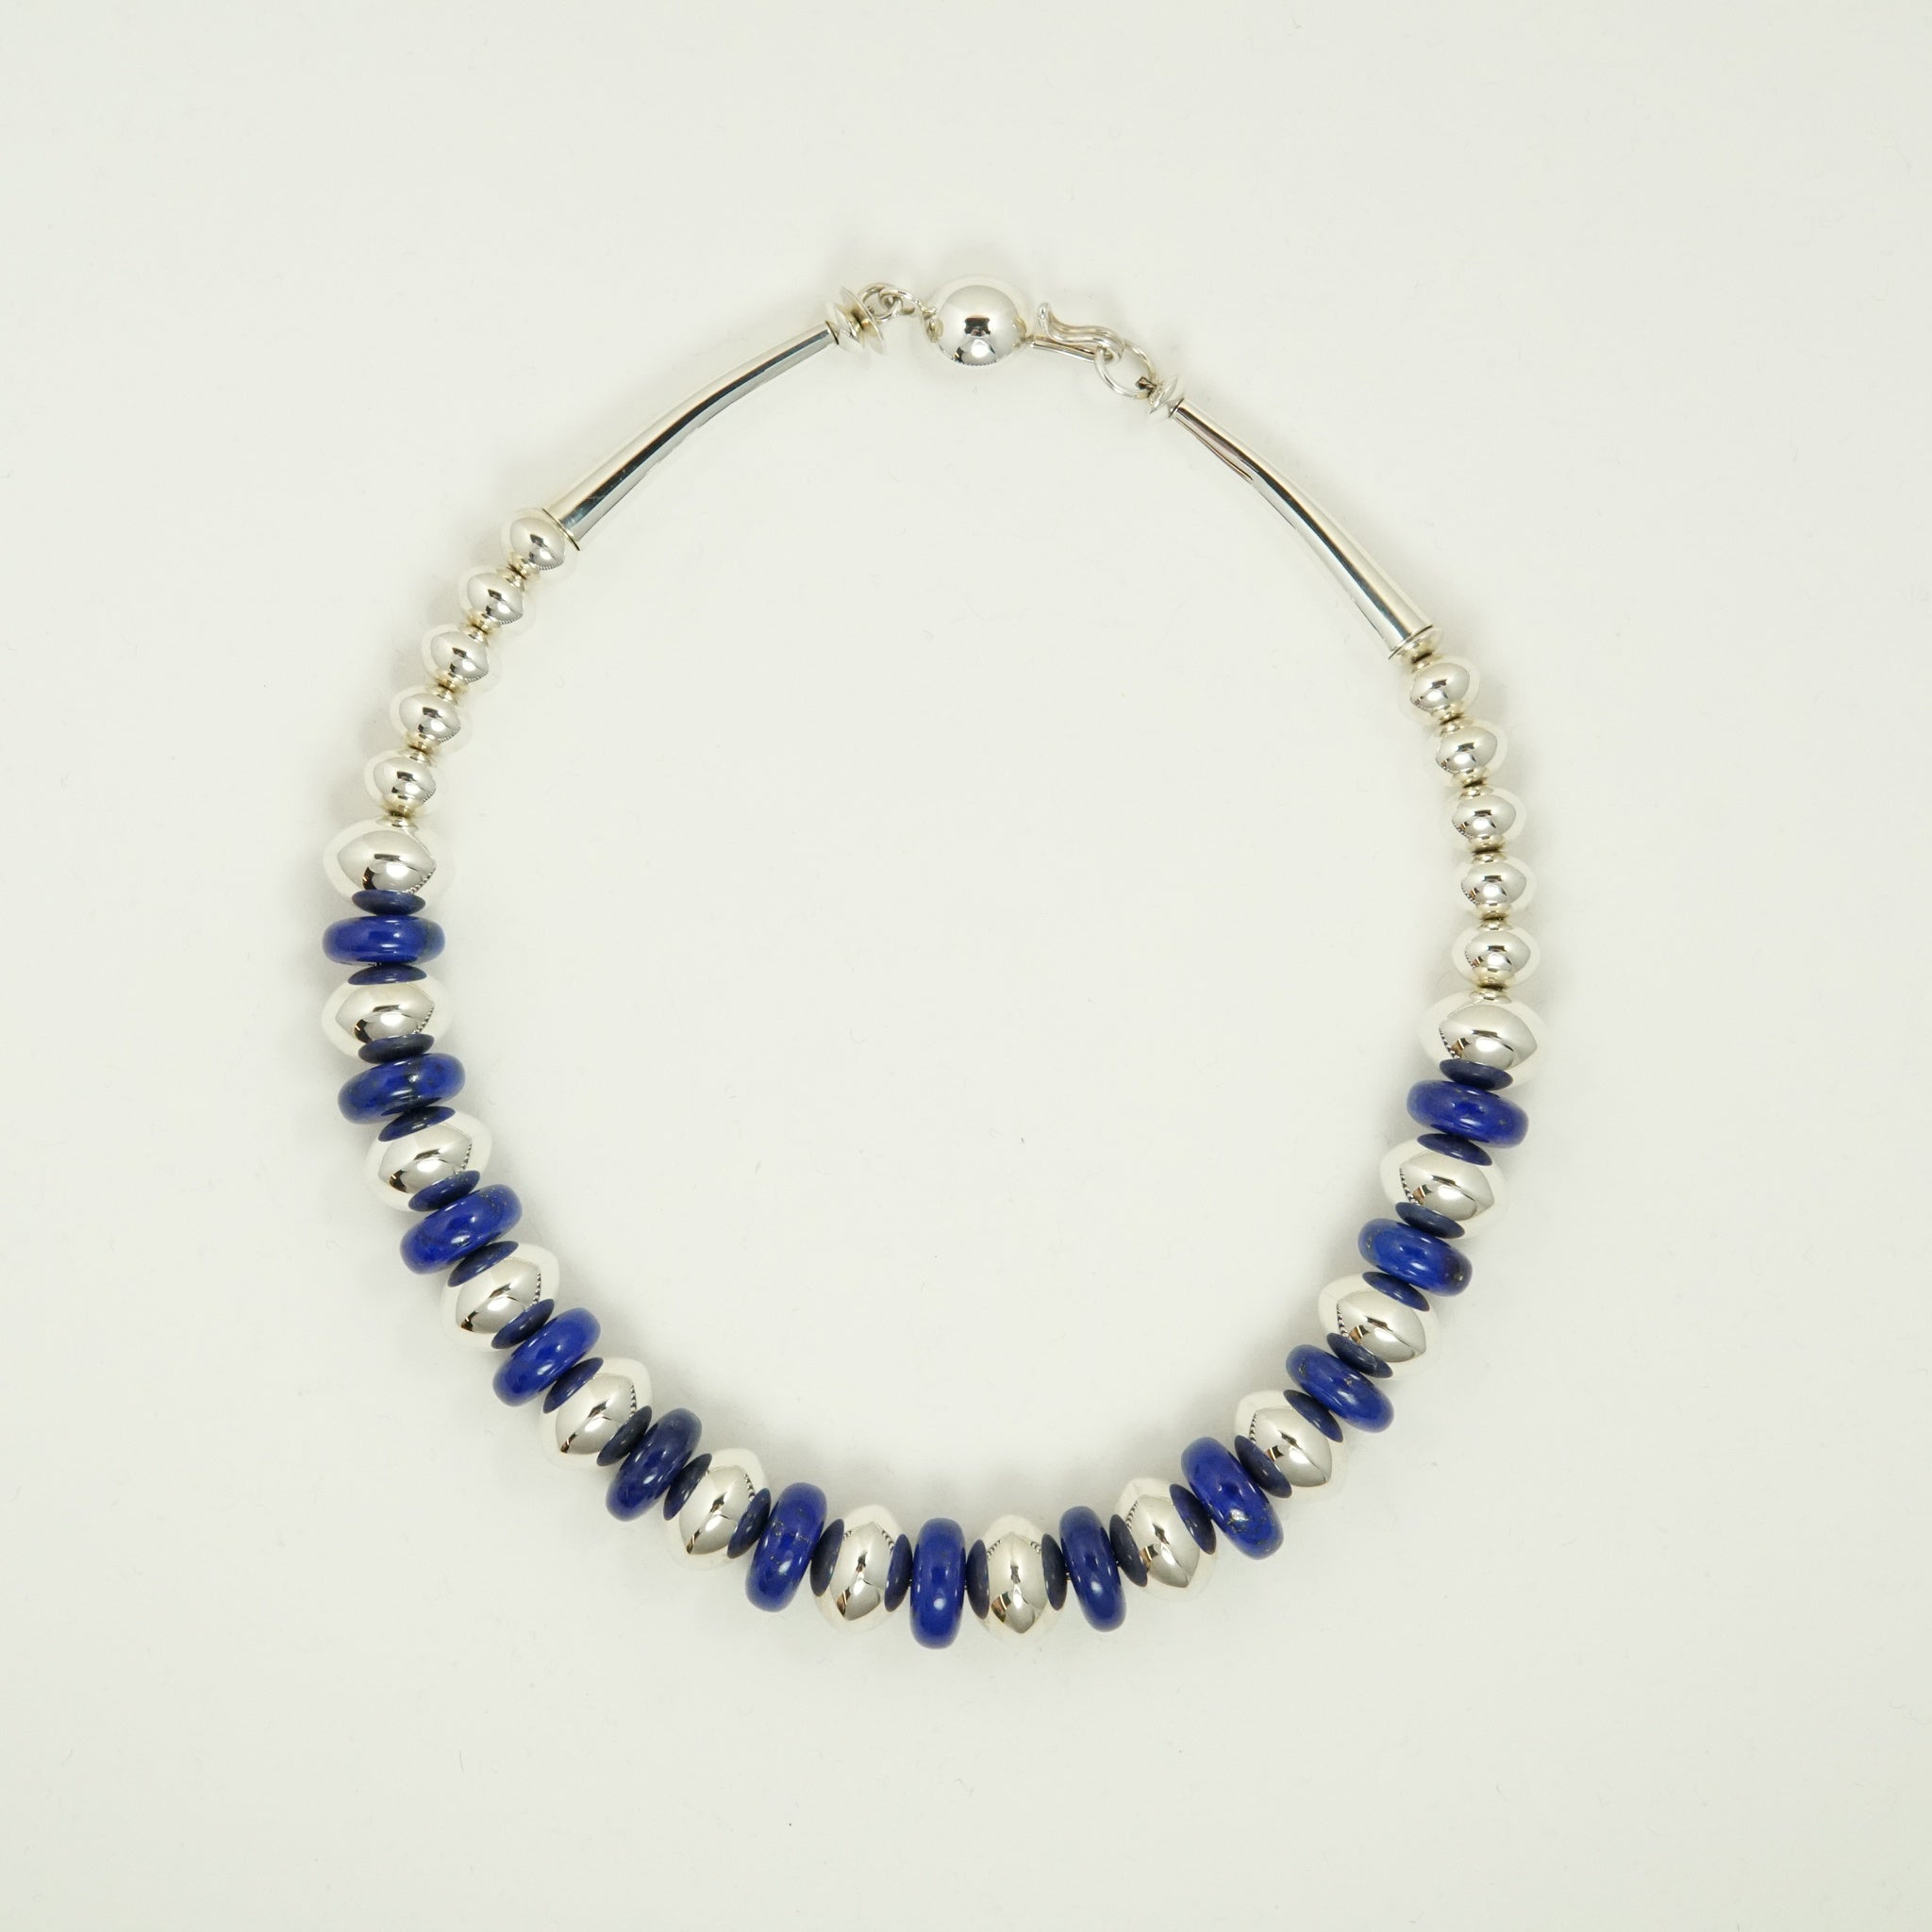 Lapis & Silver Bead Necklace by Artie Yellowhorse